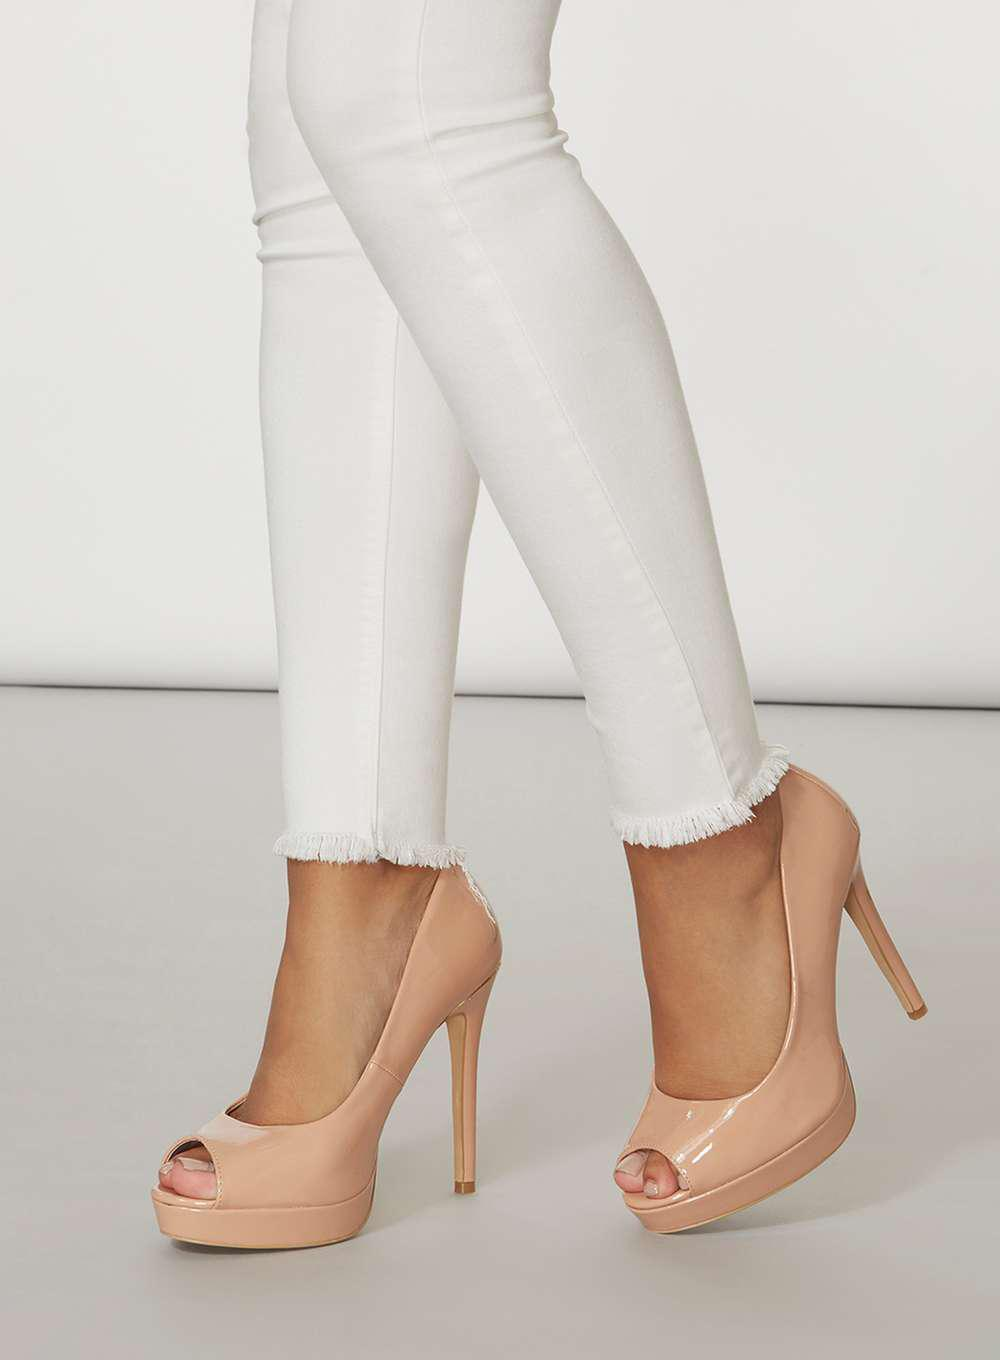 87a3e690 Dorothy Perkins Wide Fit Nude 'gift' Peep Toe Platform Heel in White ...